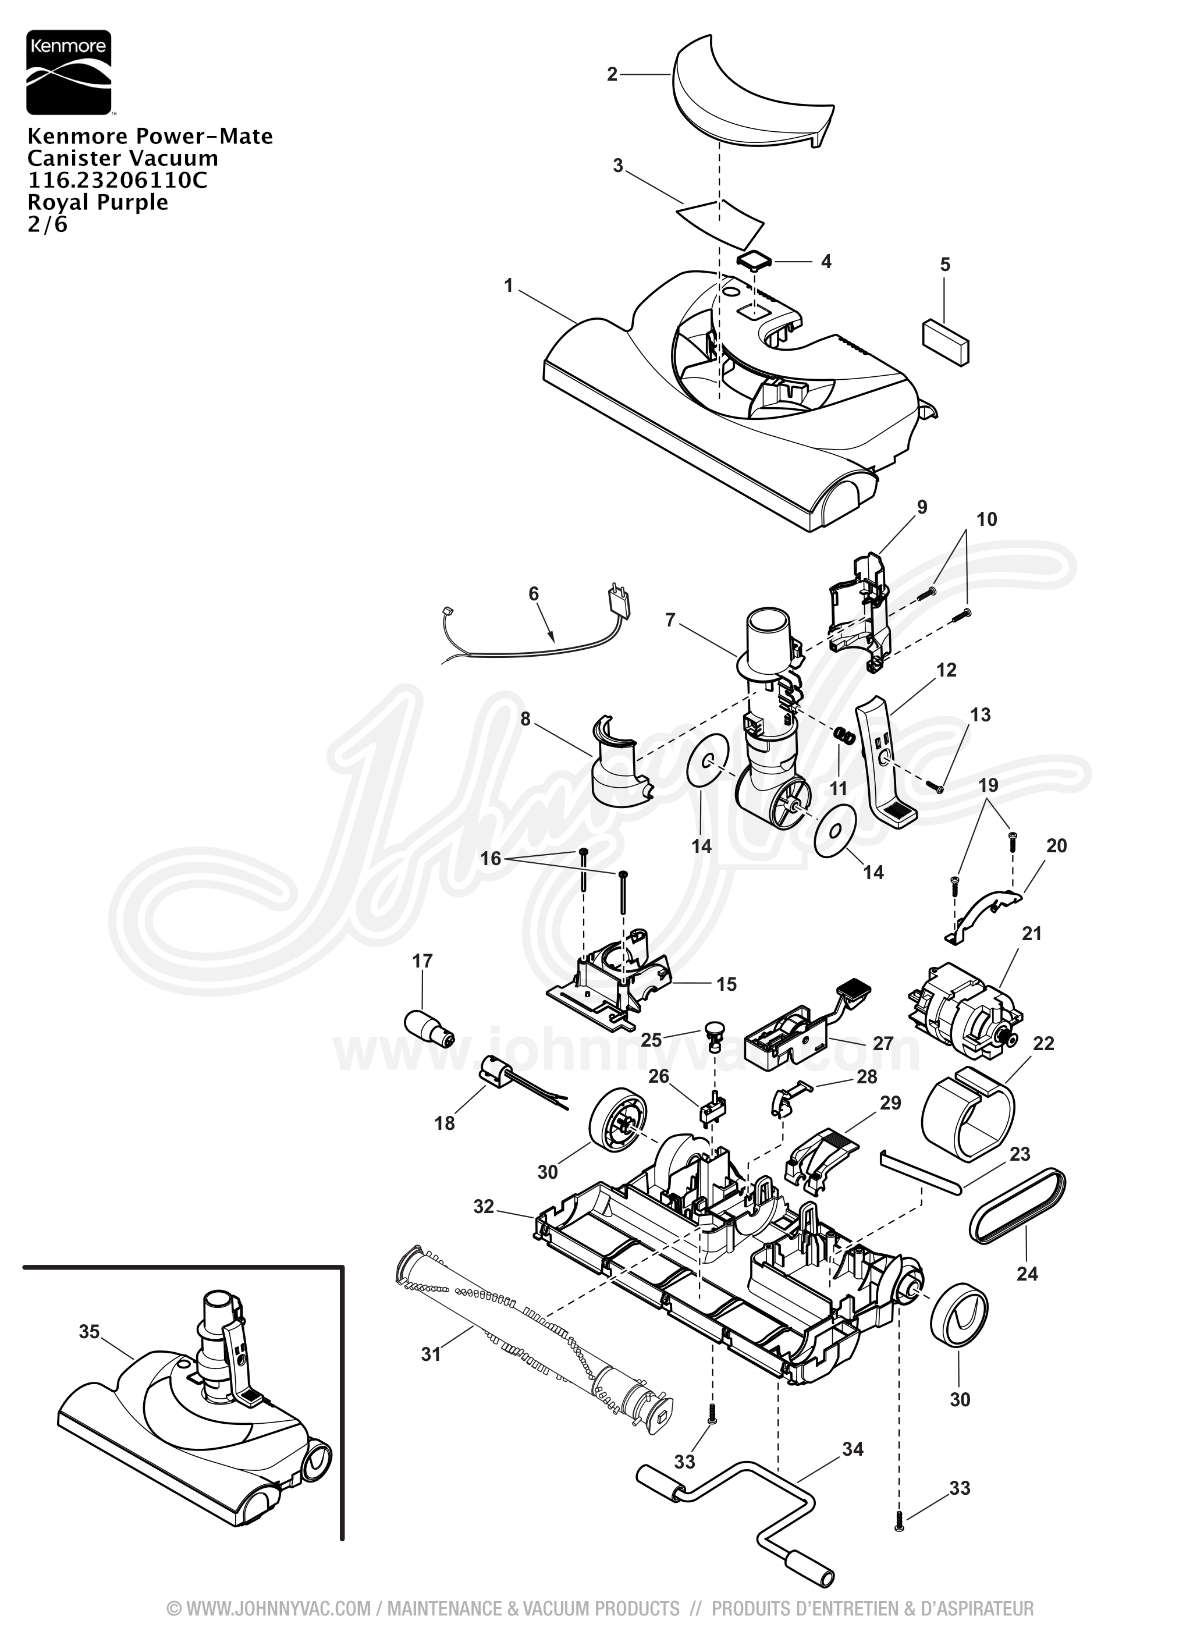 hight resolution of vacuum schematic exploded view for kenmore power mate canister vacuum 116 23206110c